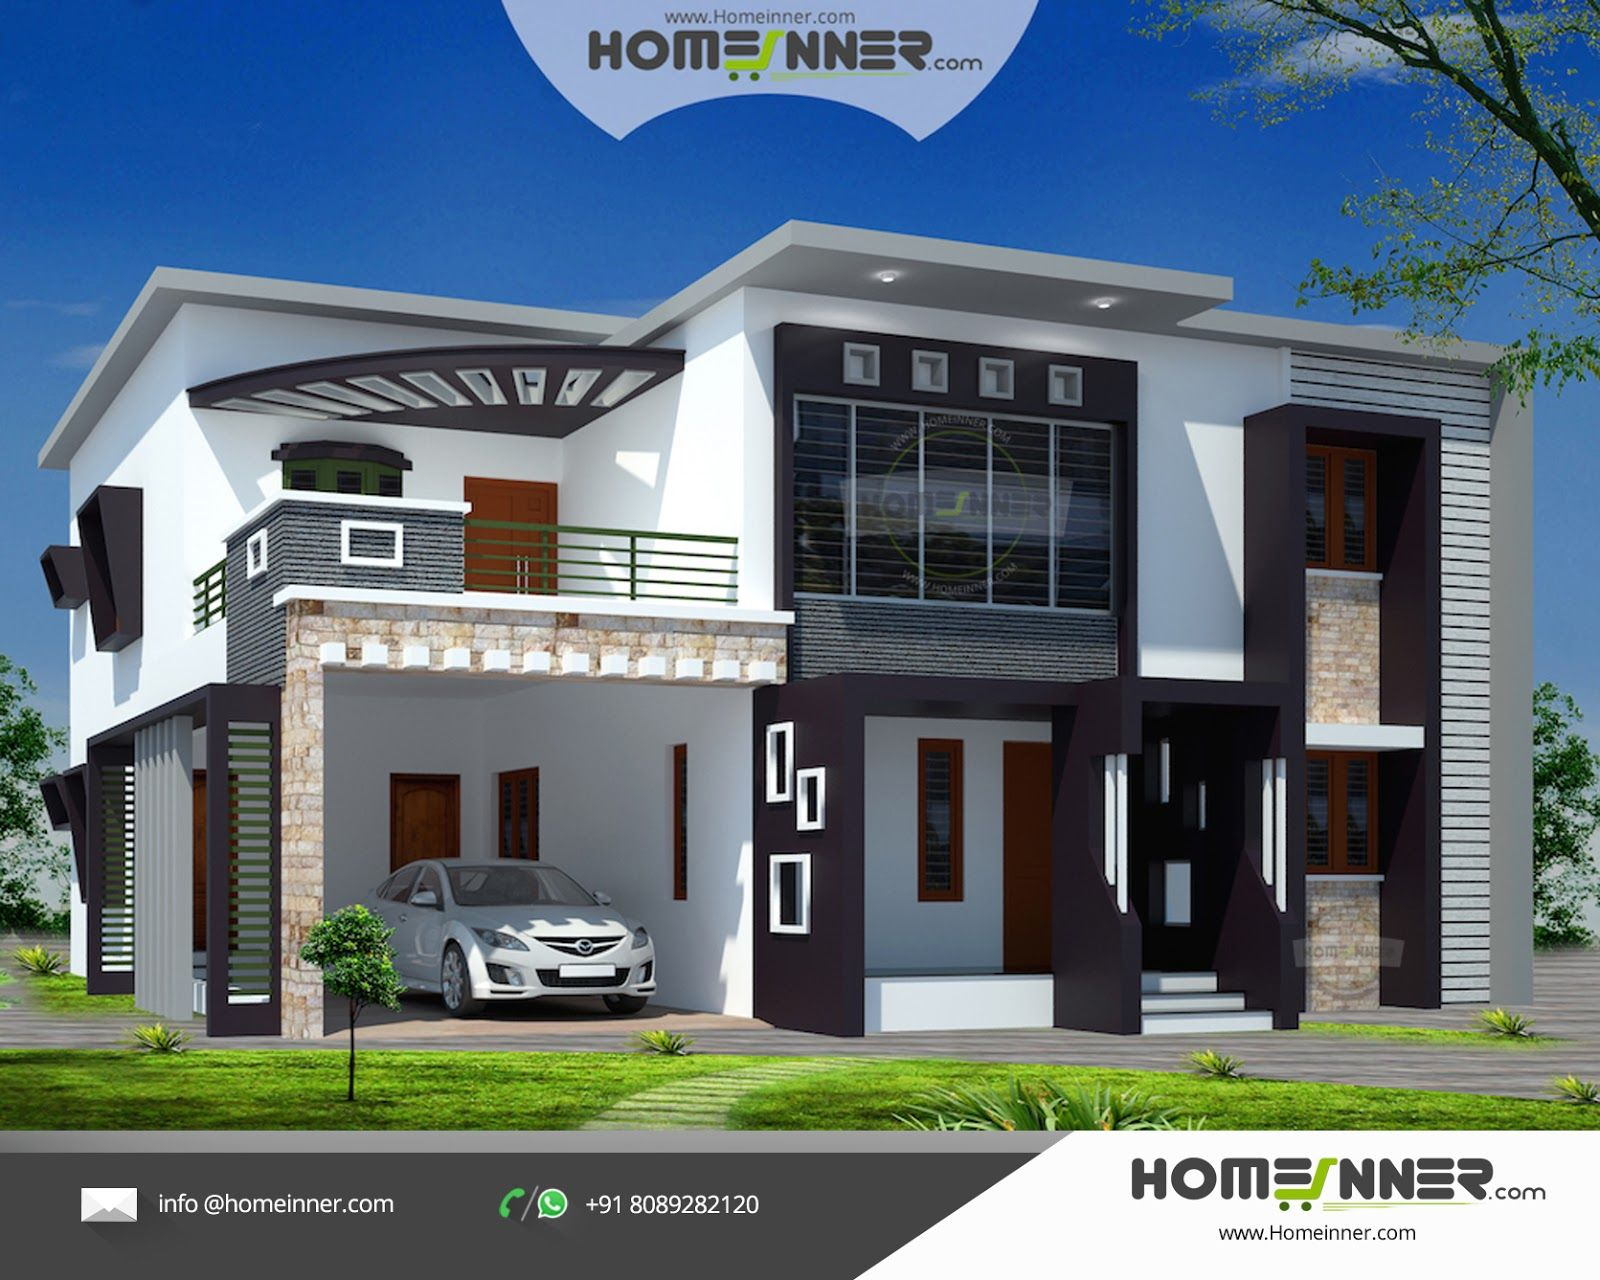 Design Homes Com Double Storey Elevation  Two Storey House Elevation  3D Front